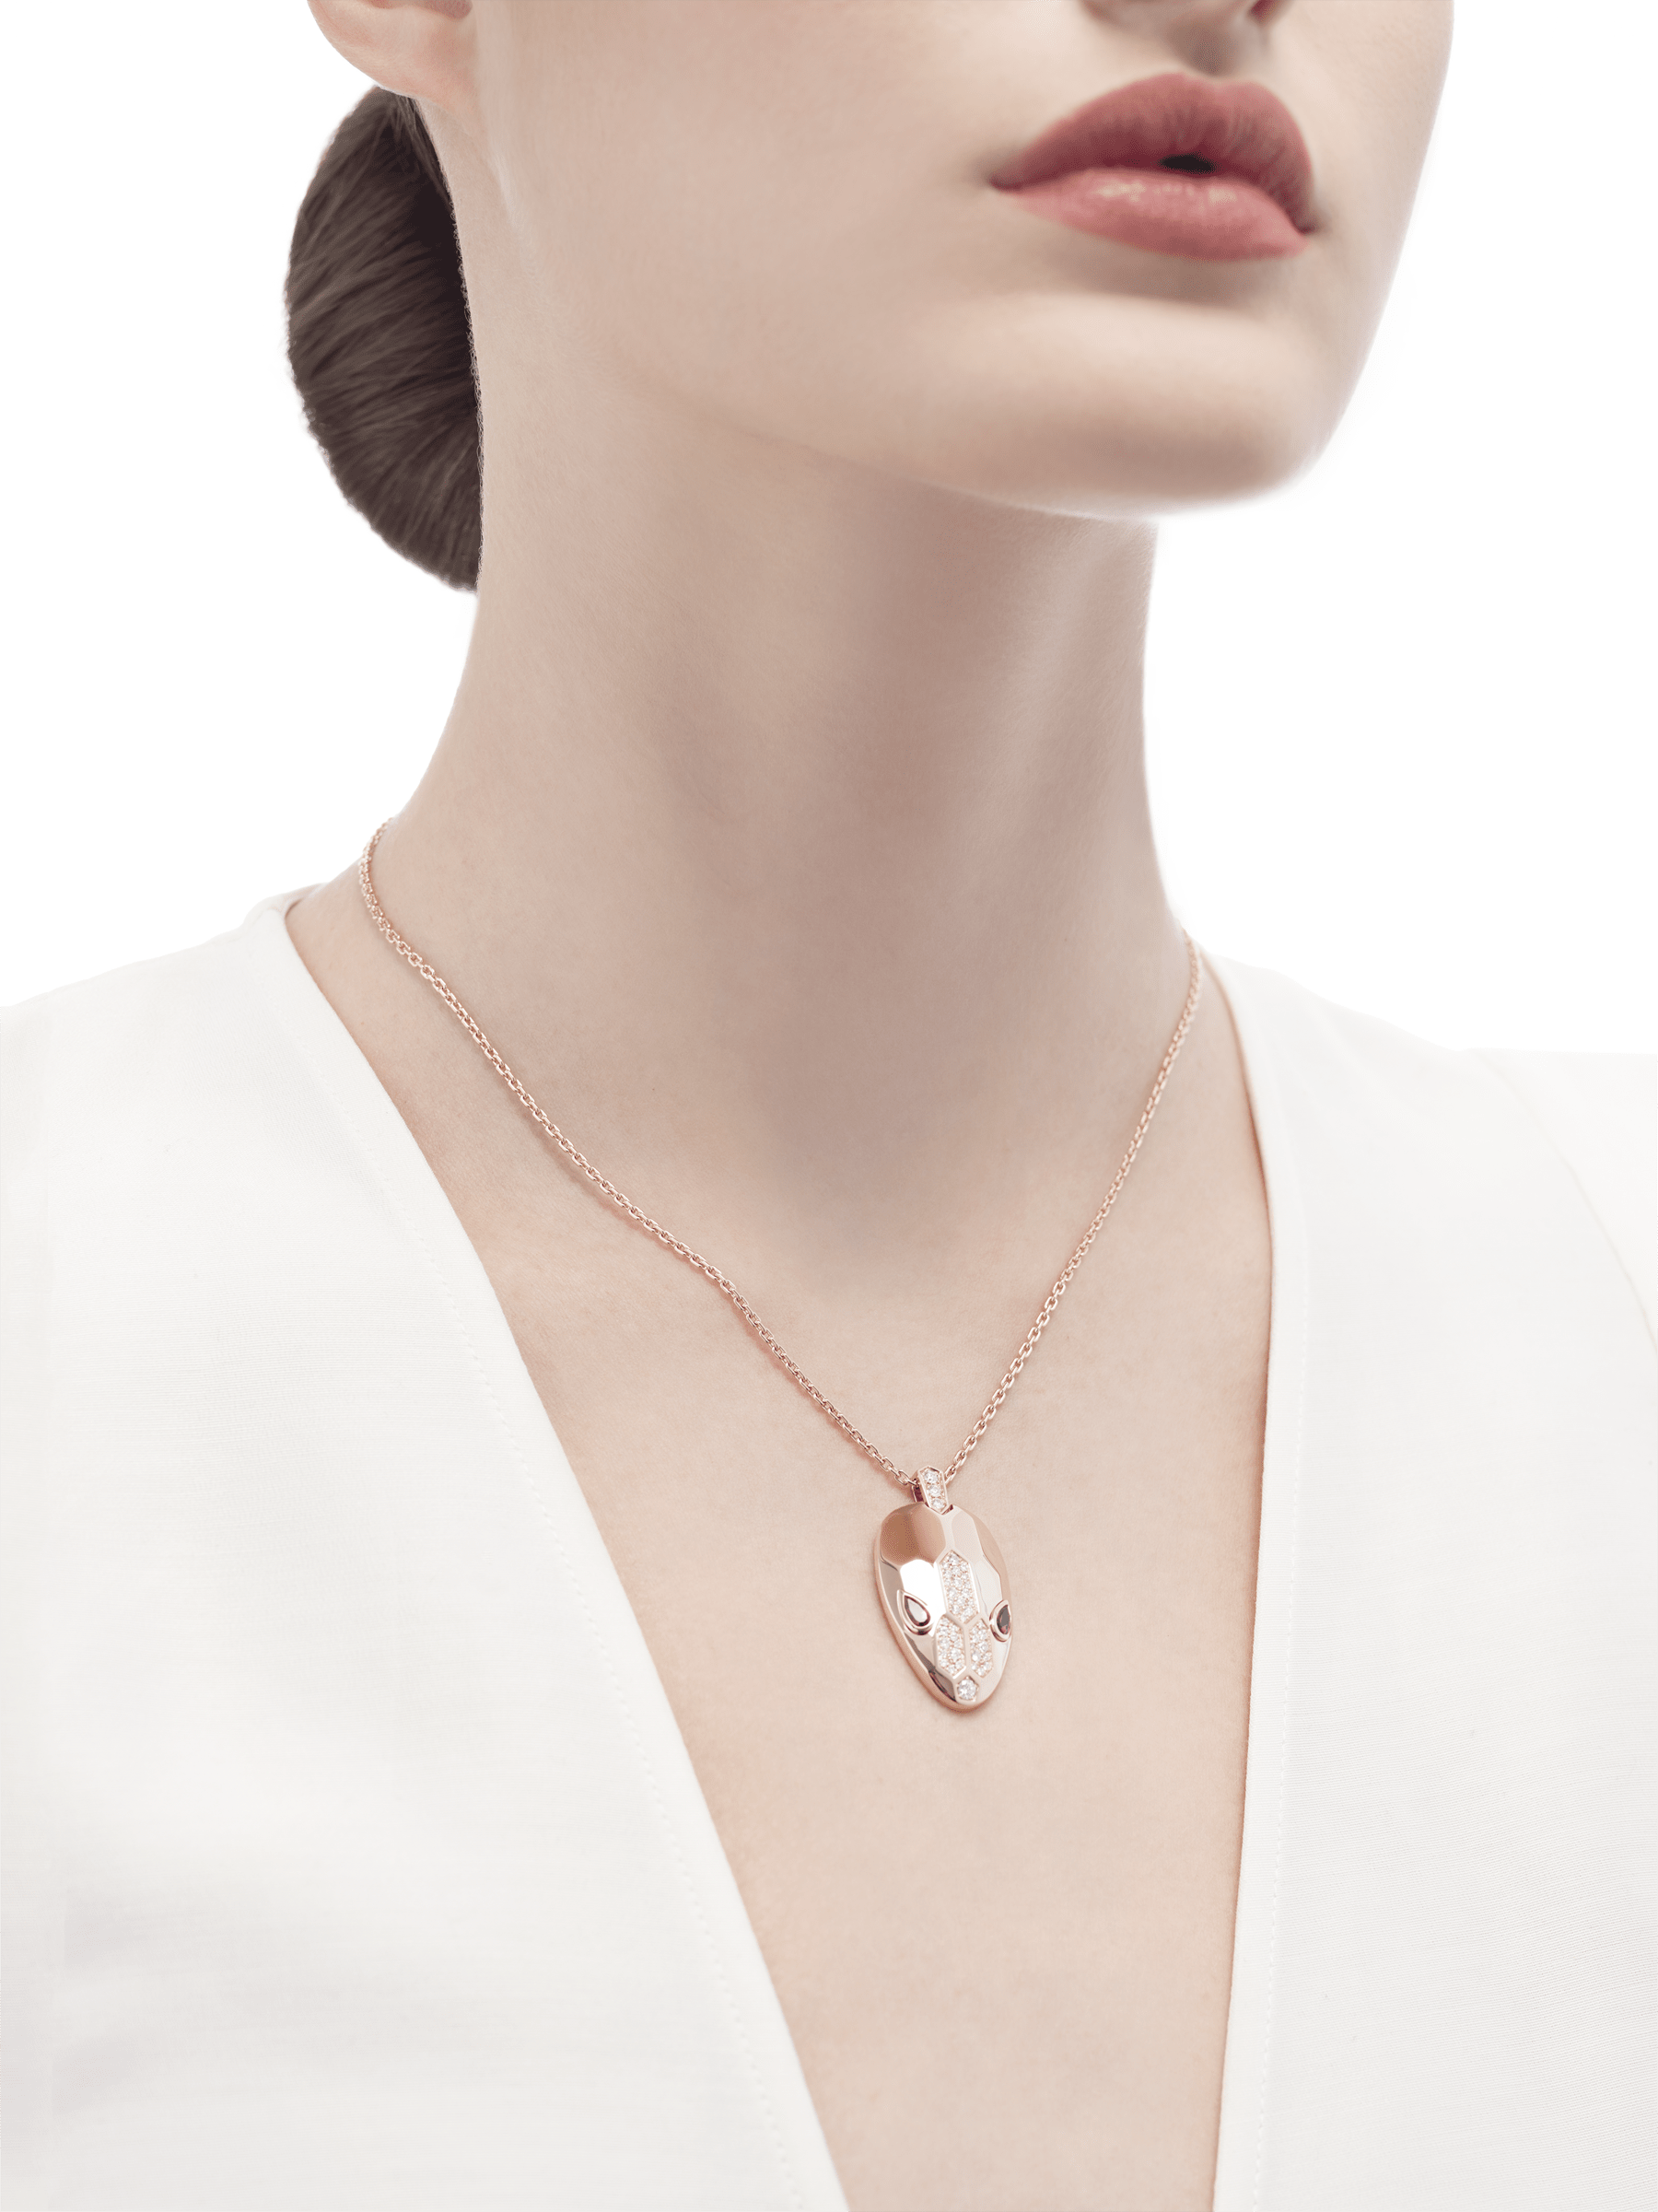 Serpenti necklace with 18 kt rose gold chain and pendant, set with rubellite eyes and demi pavé diamonds. 352723 image 4